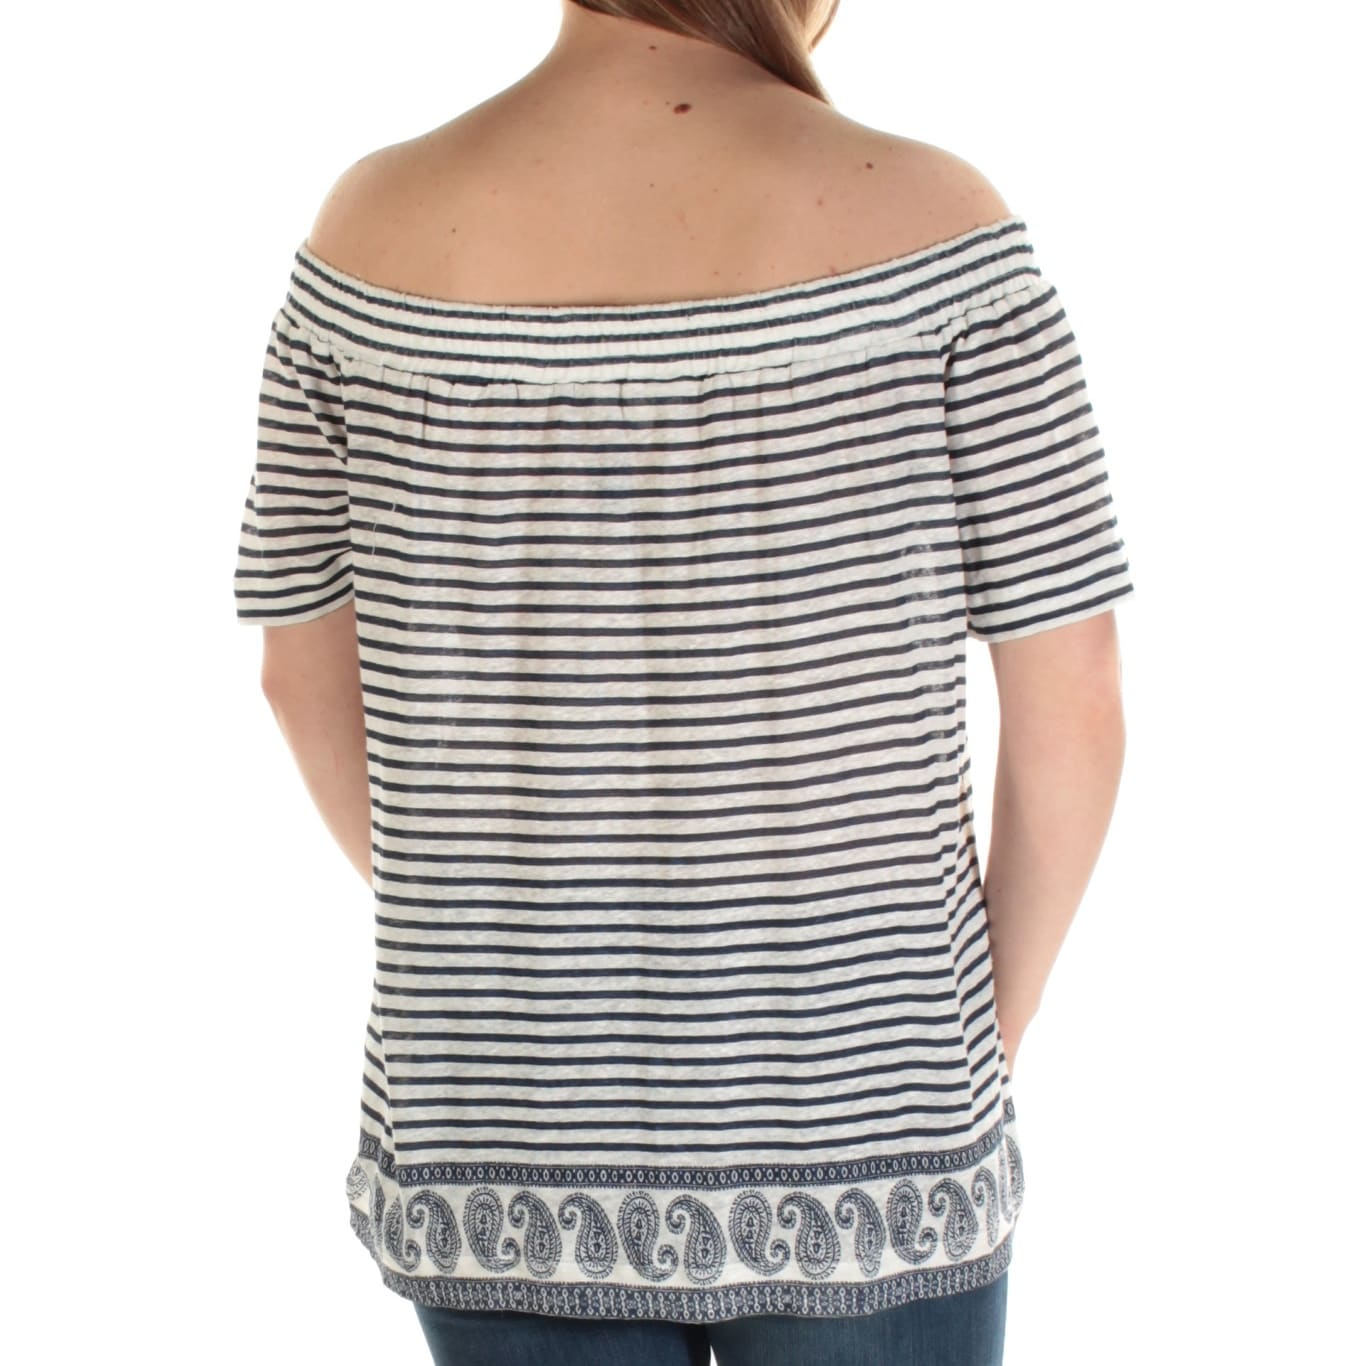 804b39602511d3 Shop VINCE CAMUTO Womens Ivory Striped Short Sleeve Off Shoulder Top Size   M - Free Shipping On Orders Over  45 - Overstock.com - 25995408